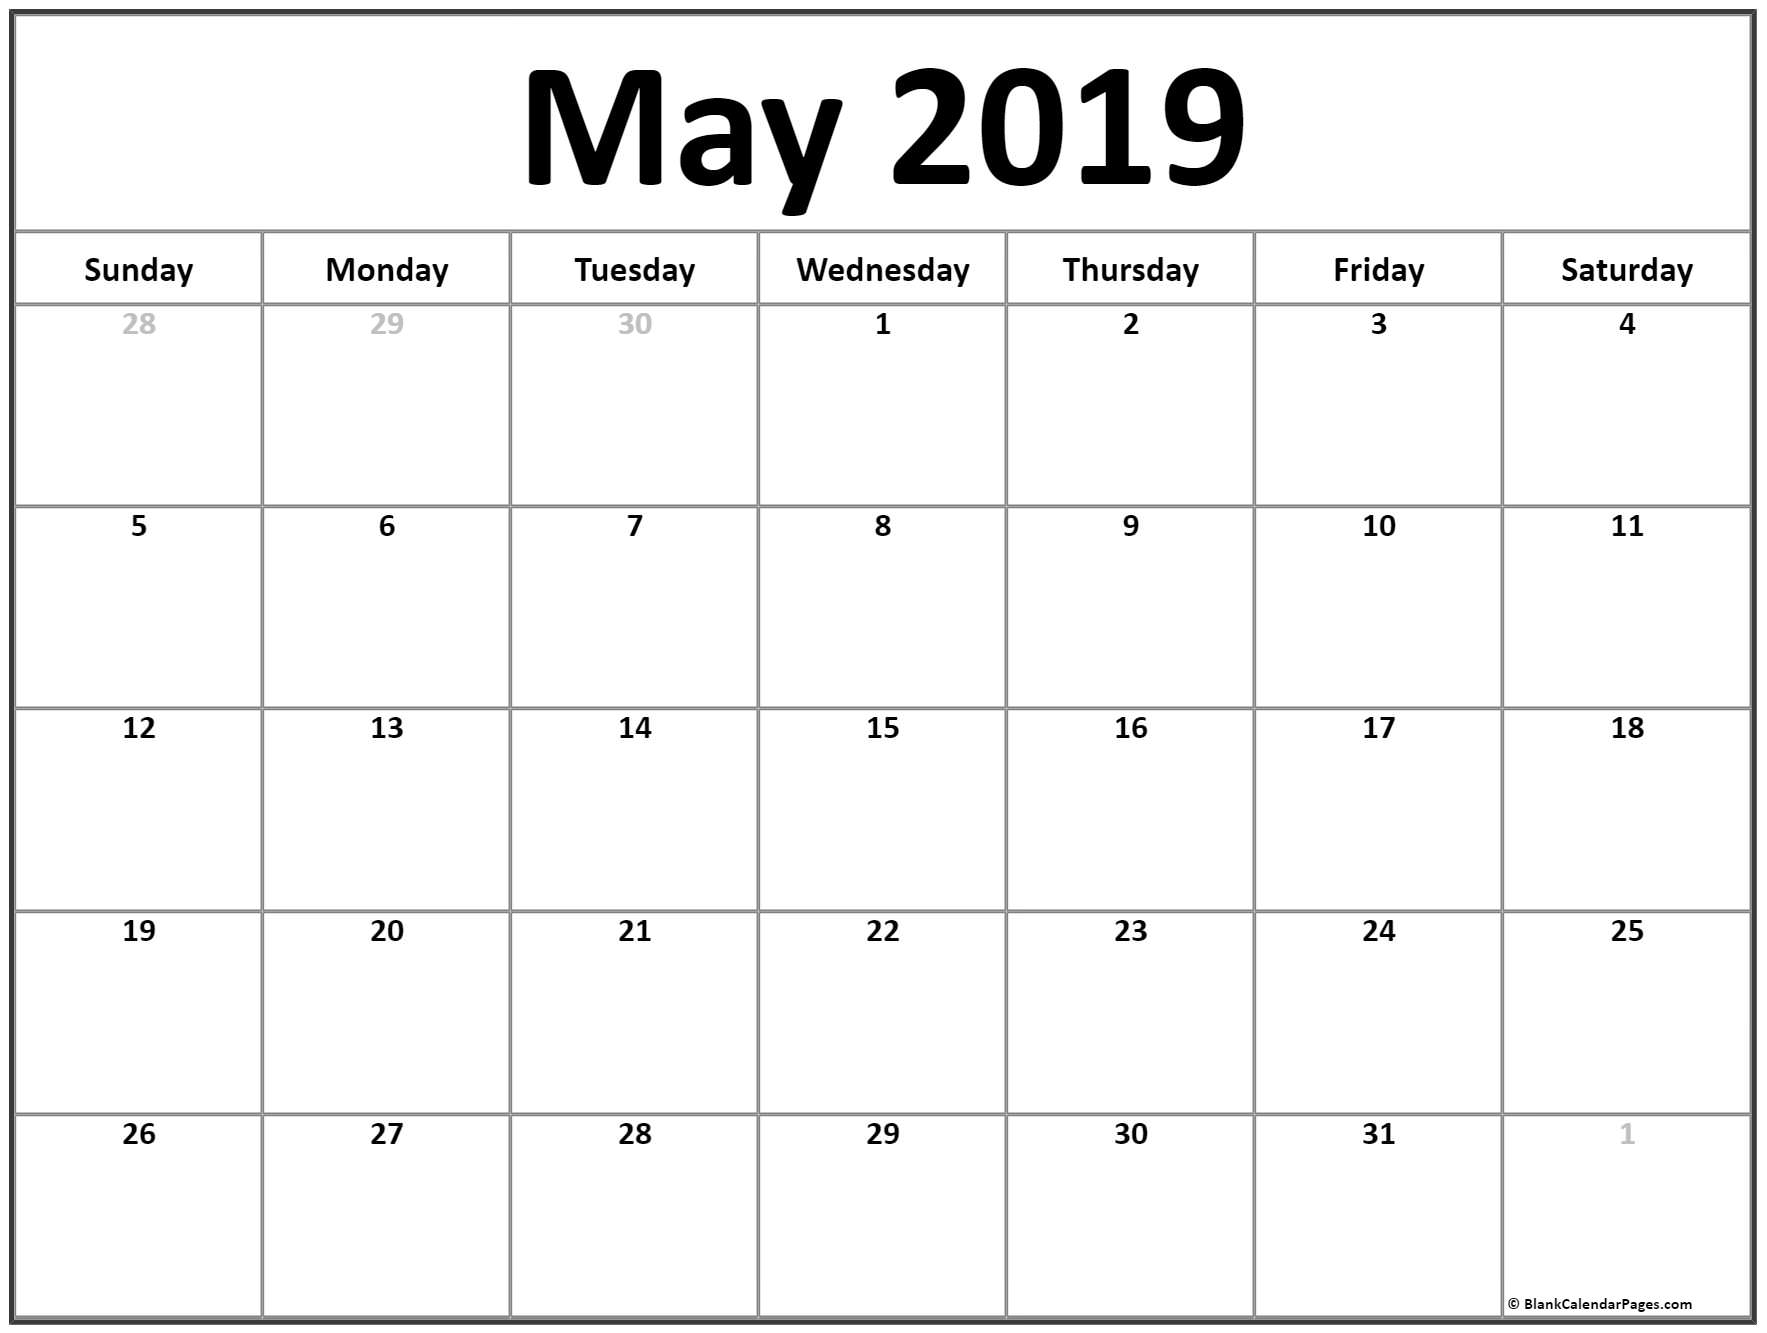 Month of May 2019 Printable Calendar